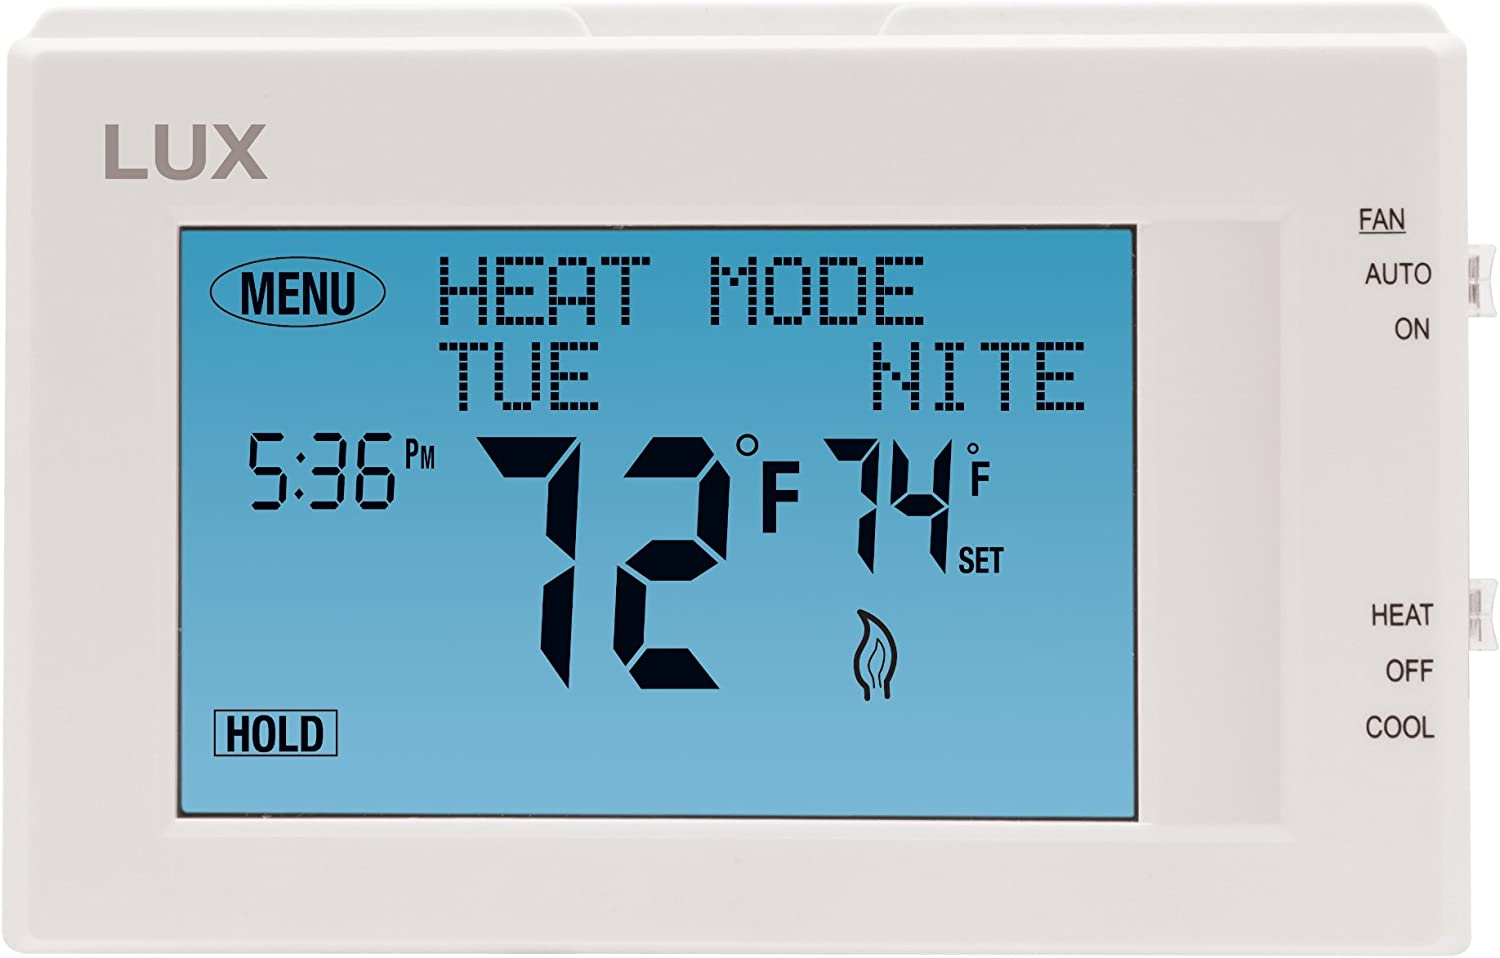 7-Day Touchscreen Thermostat Programmable Universal Installation Lux TX9600TS